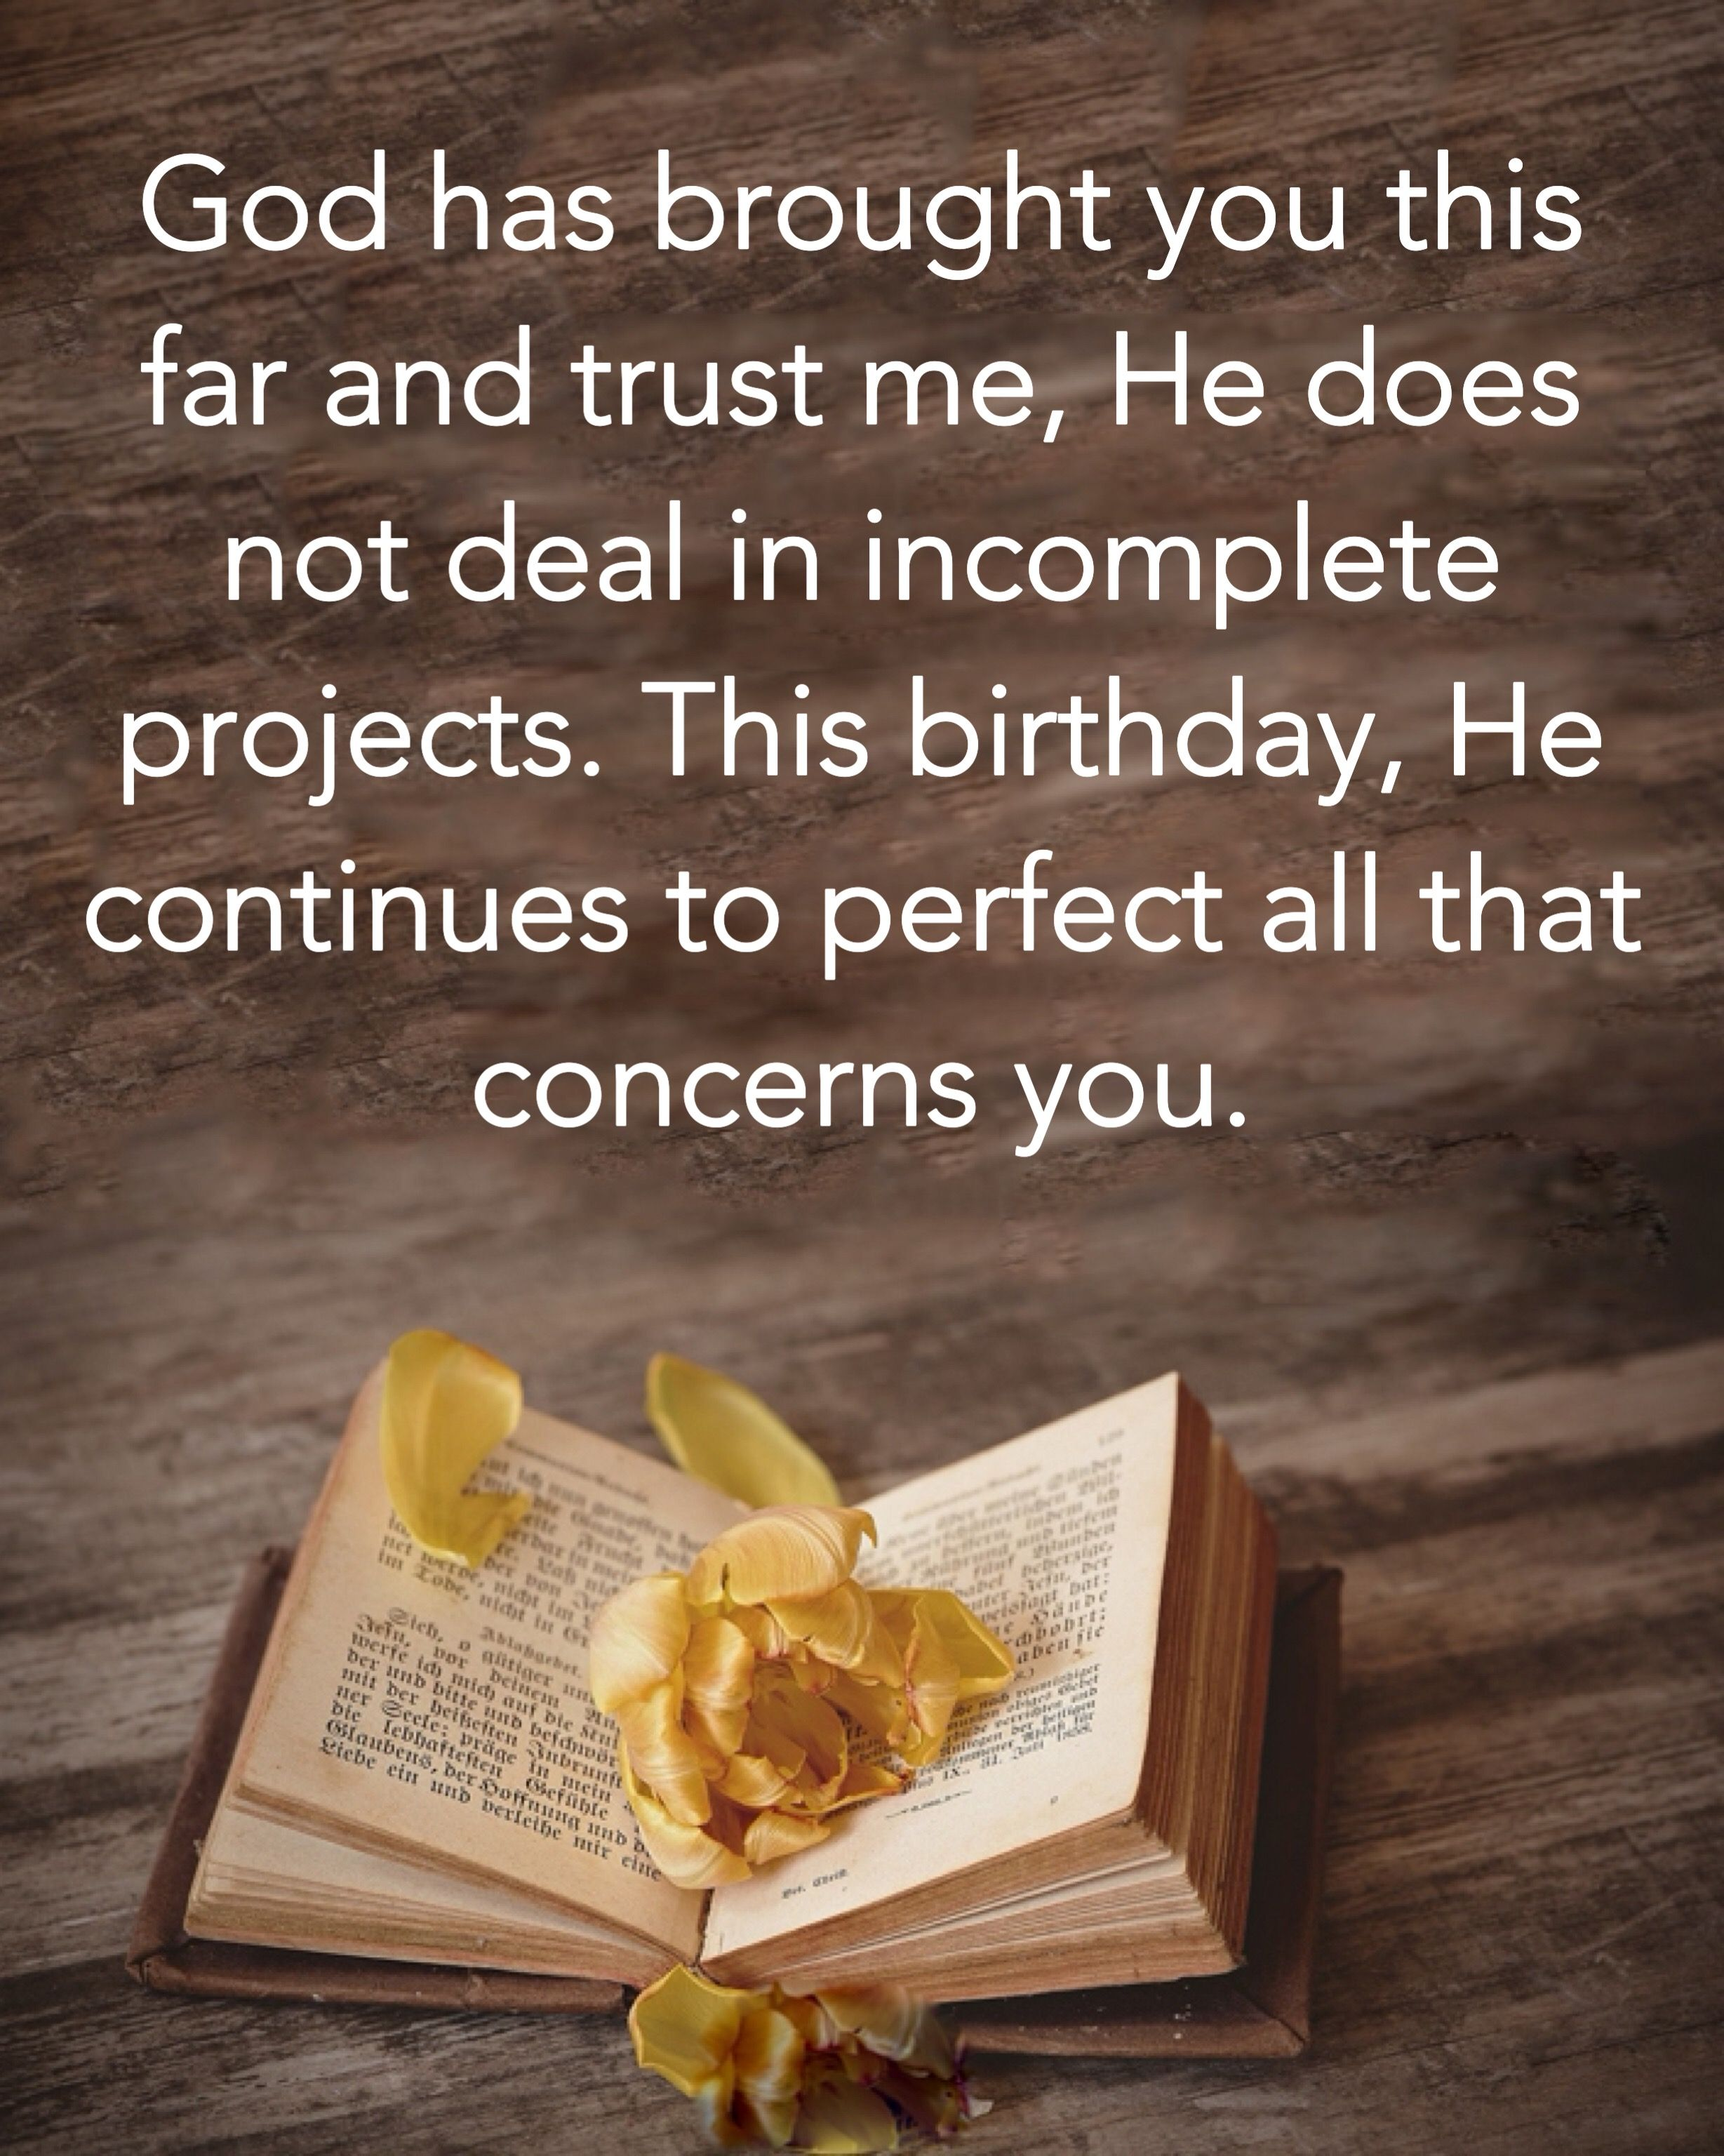 30 Christian Birthday Wishes For Friends, Son, Daughter